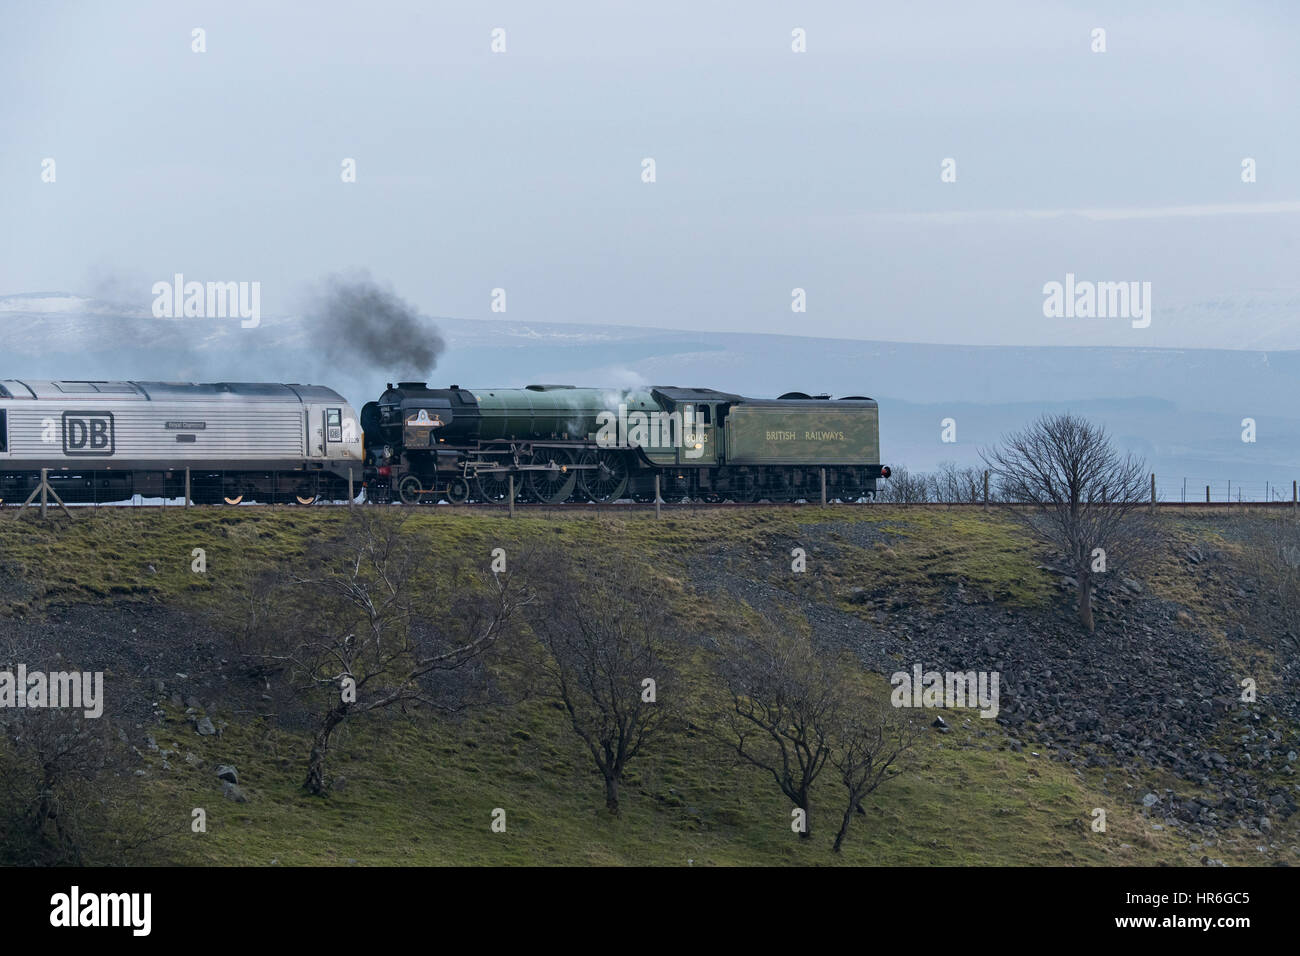 Puffing smoke, locomotive, No. 60163 Tornado, (brand new Peppercorn A1 Pacific) about to travel across the Ribblehead - Stock Image